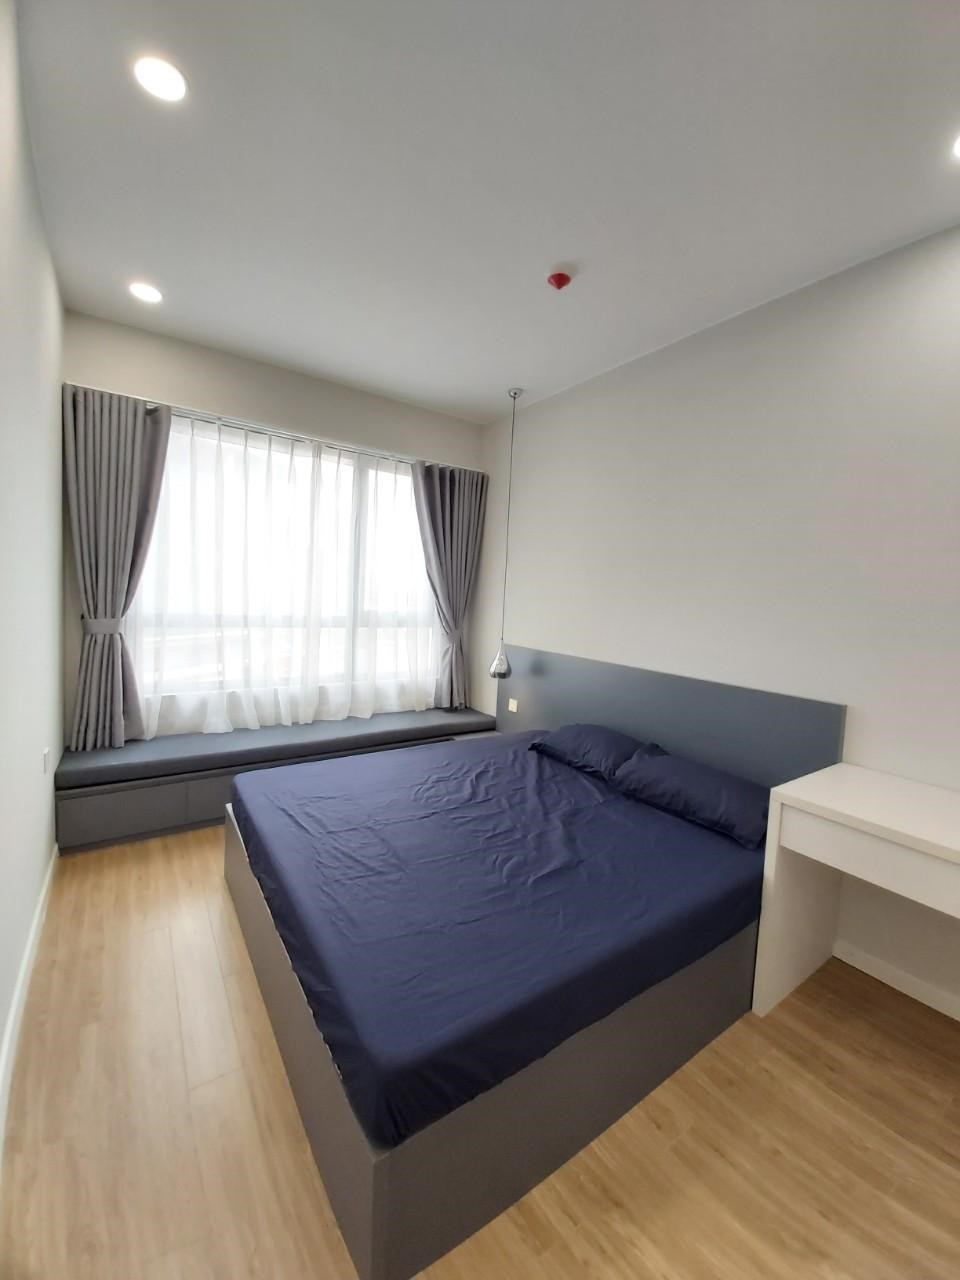 MAP95287 - Apartment for rent - Masteri An Phu - 1 bedroom